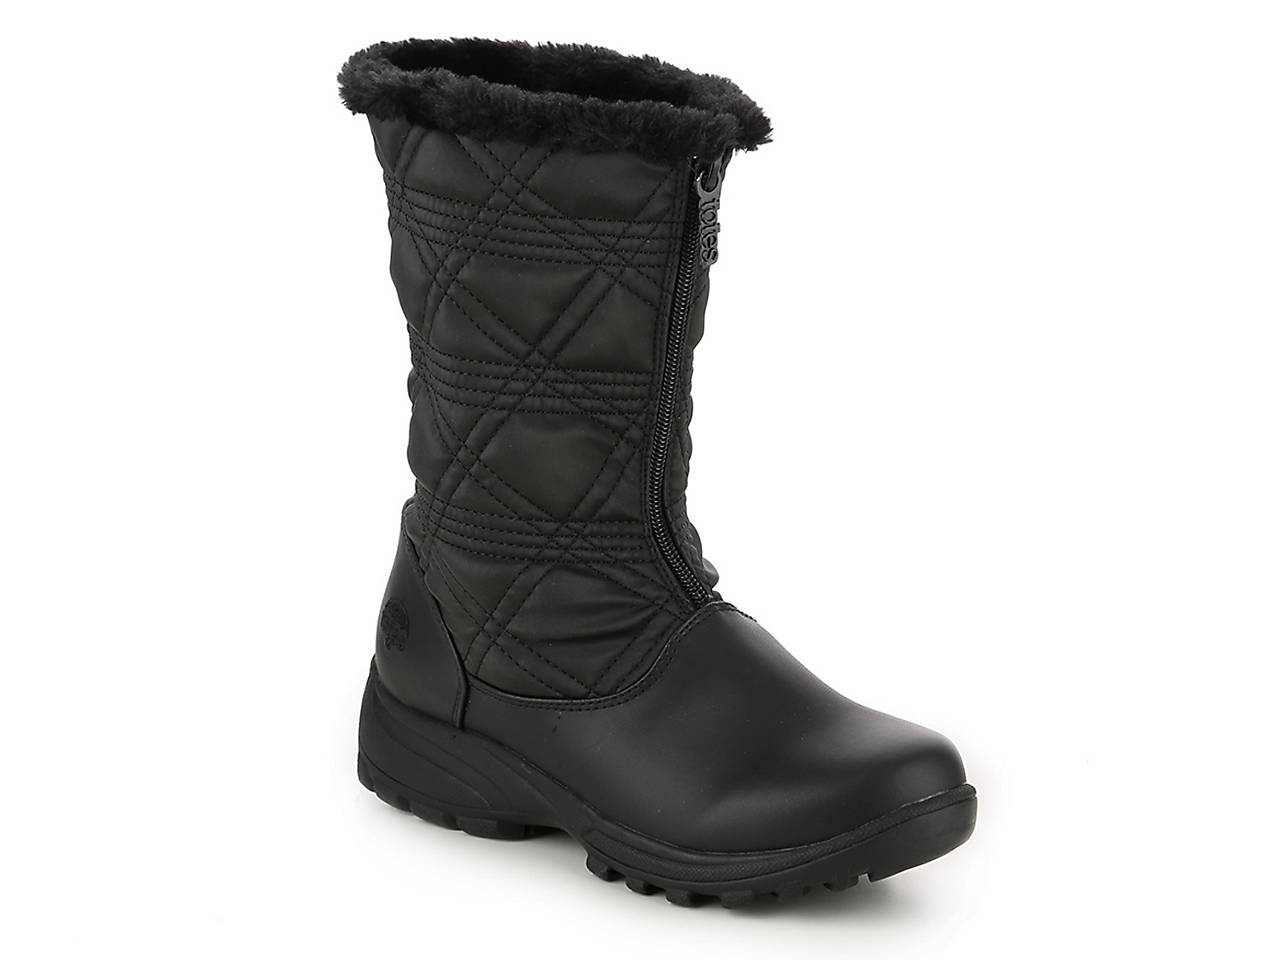 Women's Mid Calf Waterproof Winter Boots Pull On Round Toe Cold Weather Snow Boots